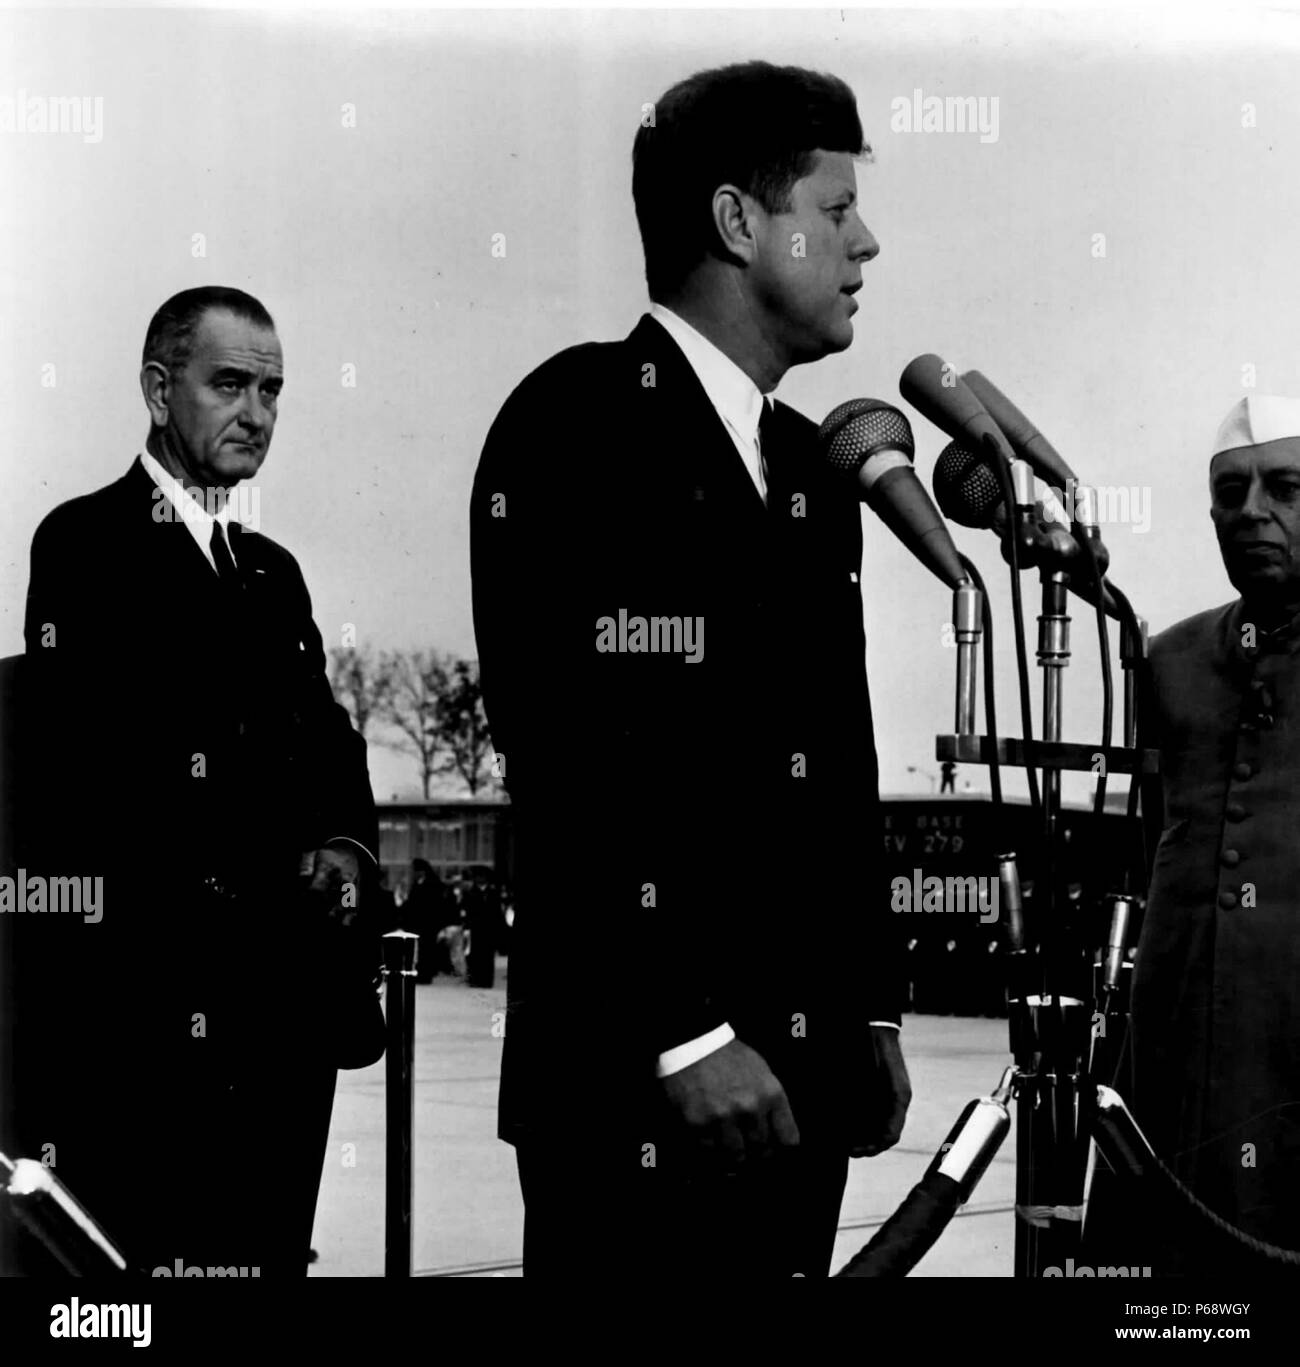 John F Kennedy welcomes Indian Prime Minister Jawaharlal Nehru; At left is Vice President Lyndon B Johnson 1962 - Stock Image